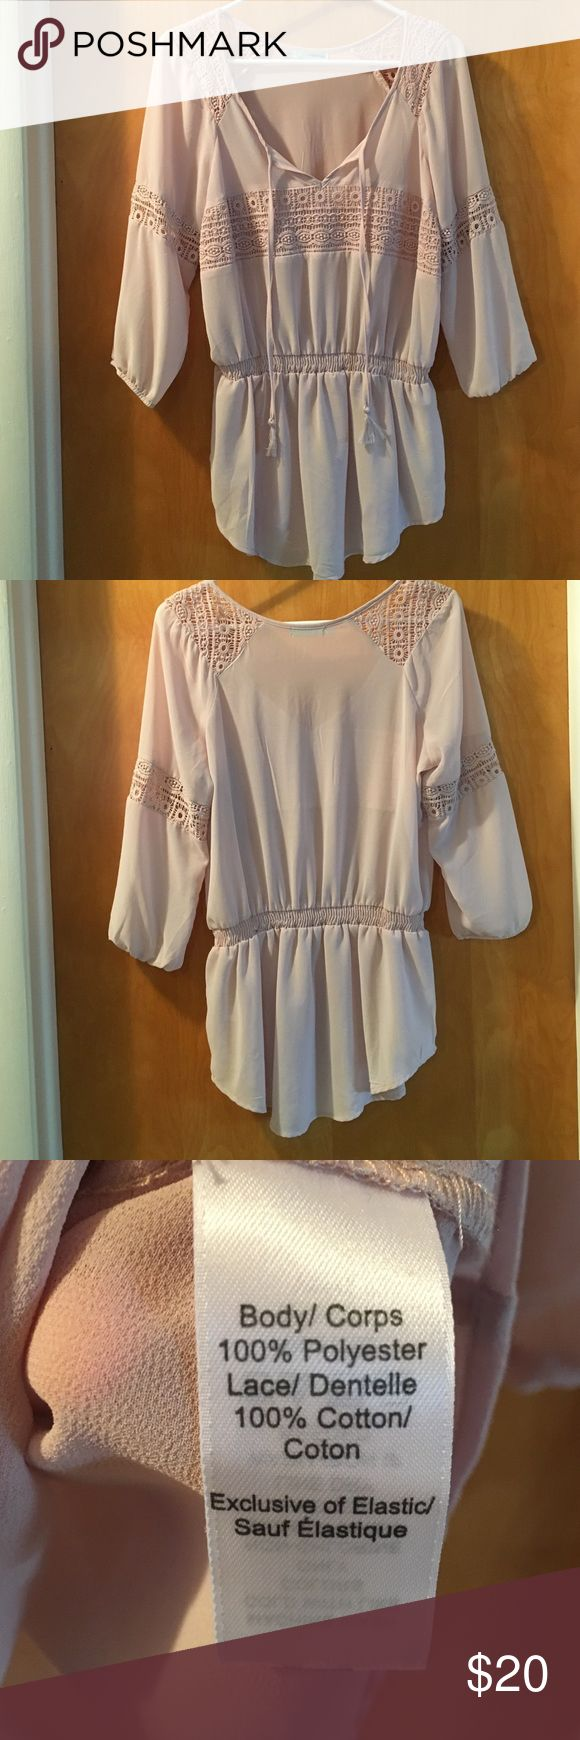 Women's Maurices bohemian blouse Women's pale mauve cinch waist blouse with v-neck and two hanging ties (with tassels ) in front. Beautiful crochet design across the front chest, both shoulders, and both sleeves. Maurices Tops Blouses